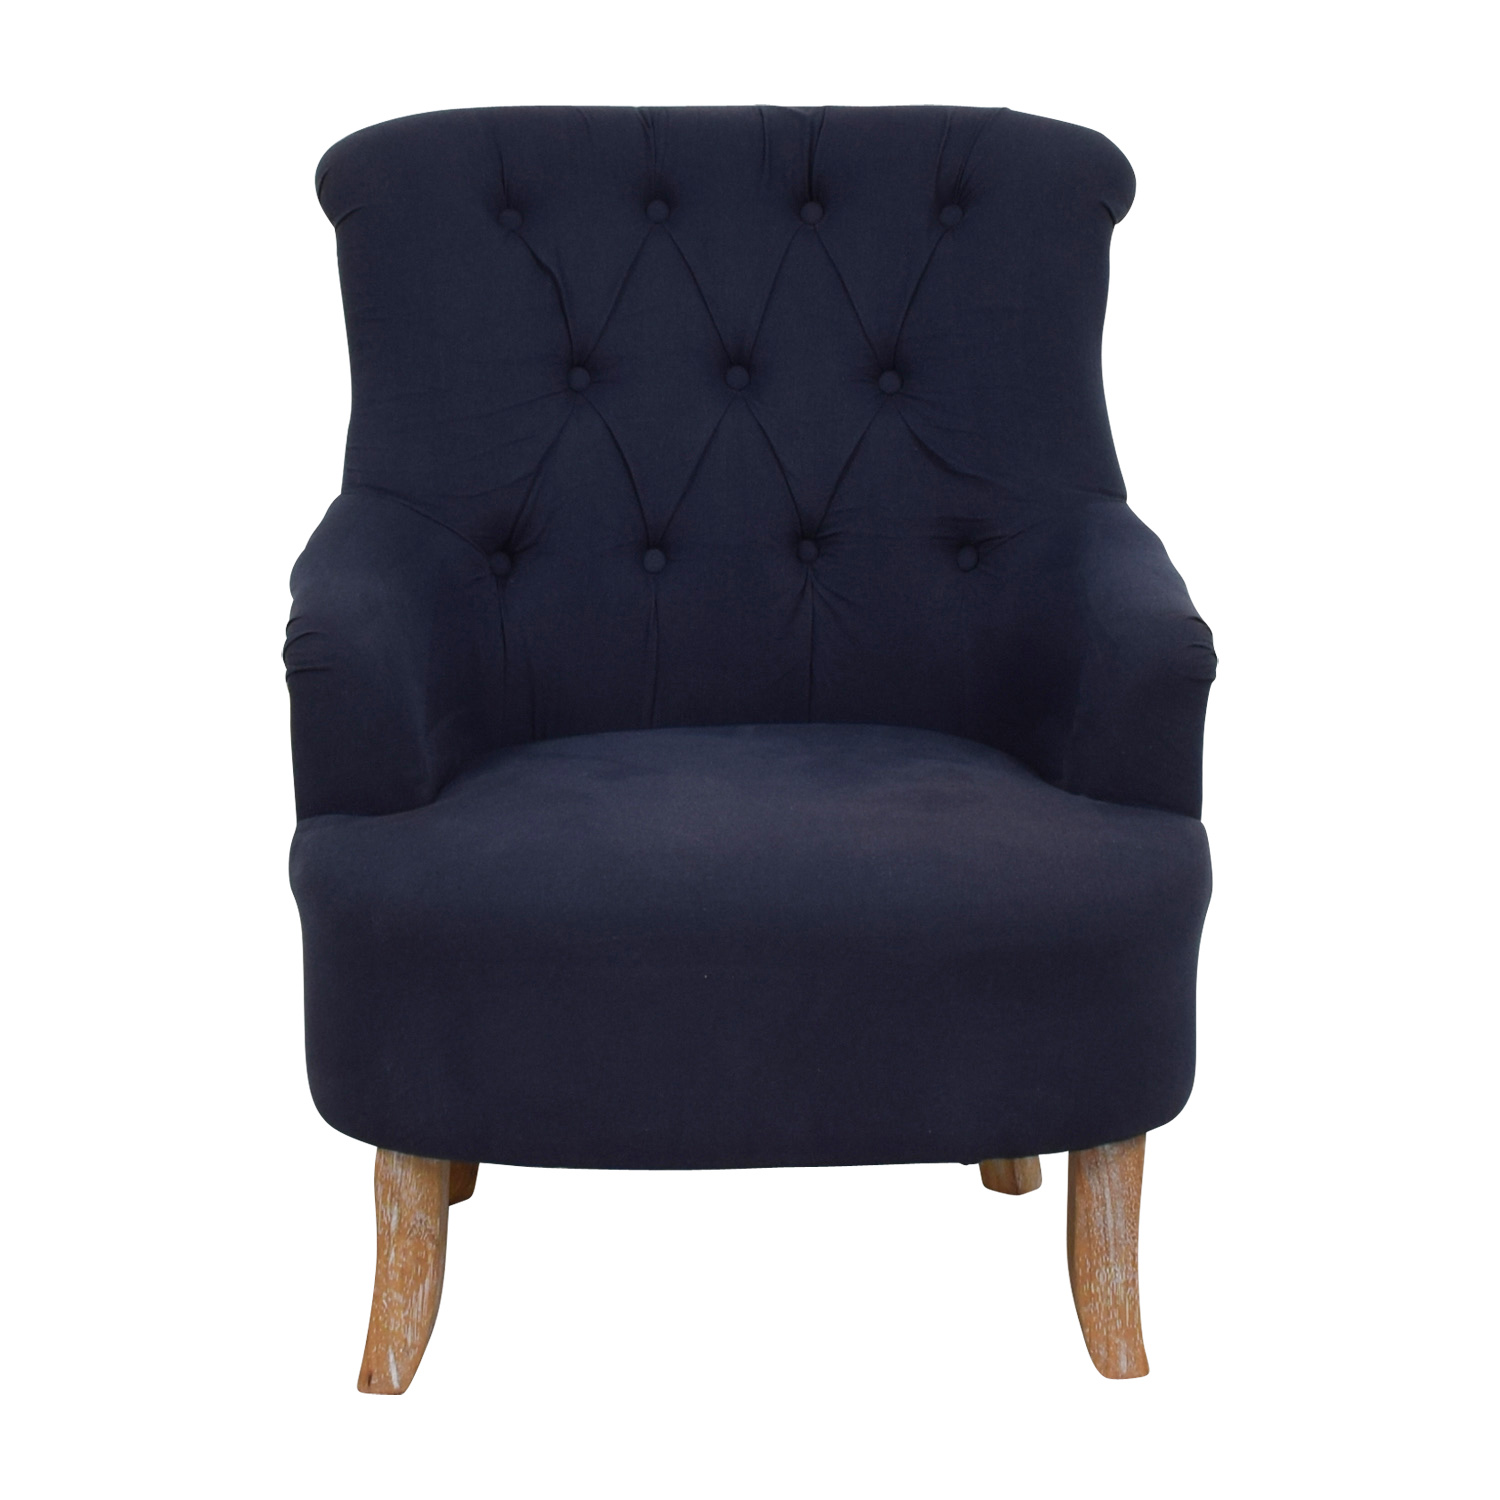 Pier 1 Imports Blue and Tan Tufted Armchair / Accent Chairs